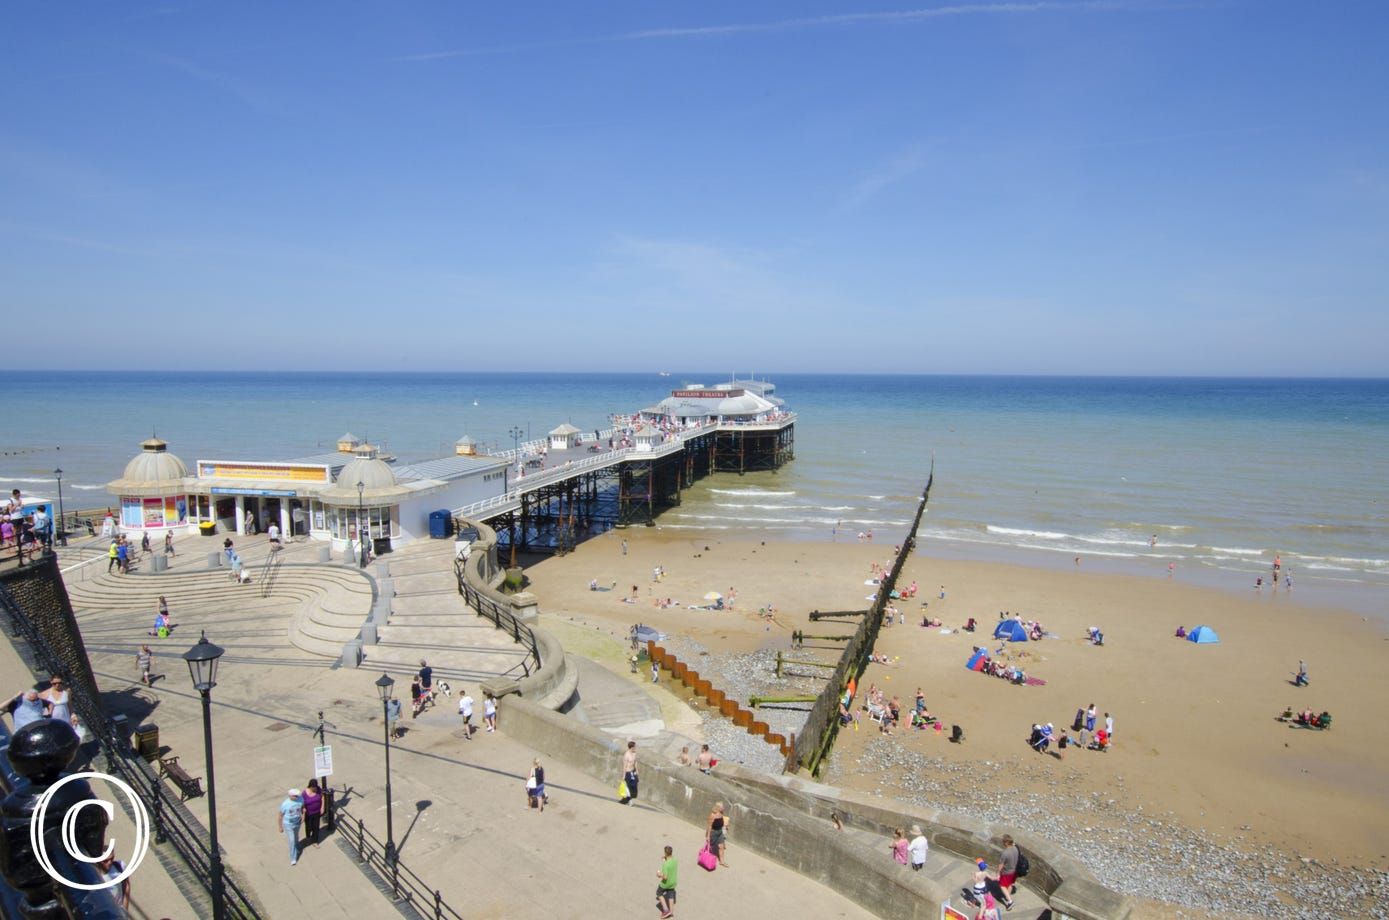 Little Barn is just 7 miles from the sandy beach at Cromer